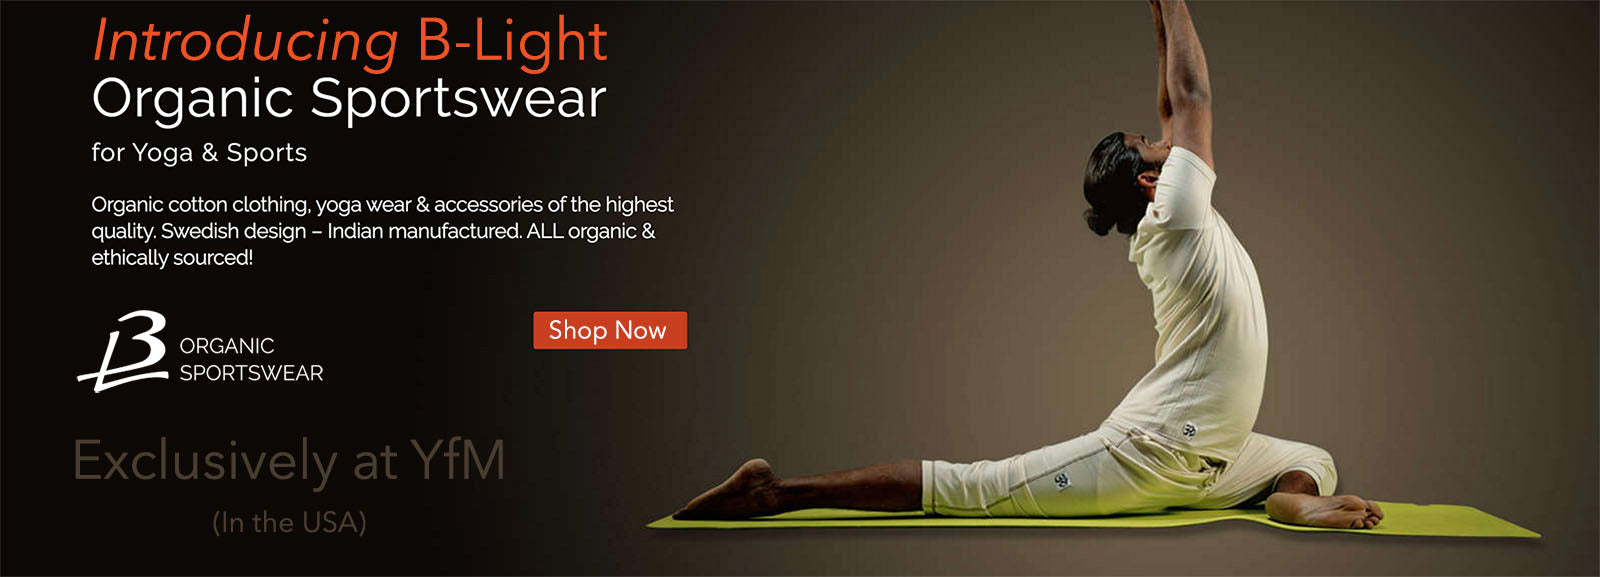 B-Light Organic Yoga and Sportswear